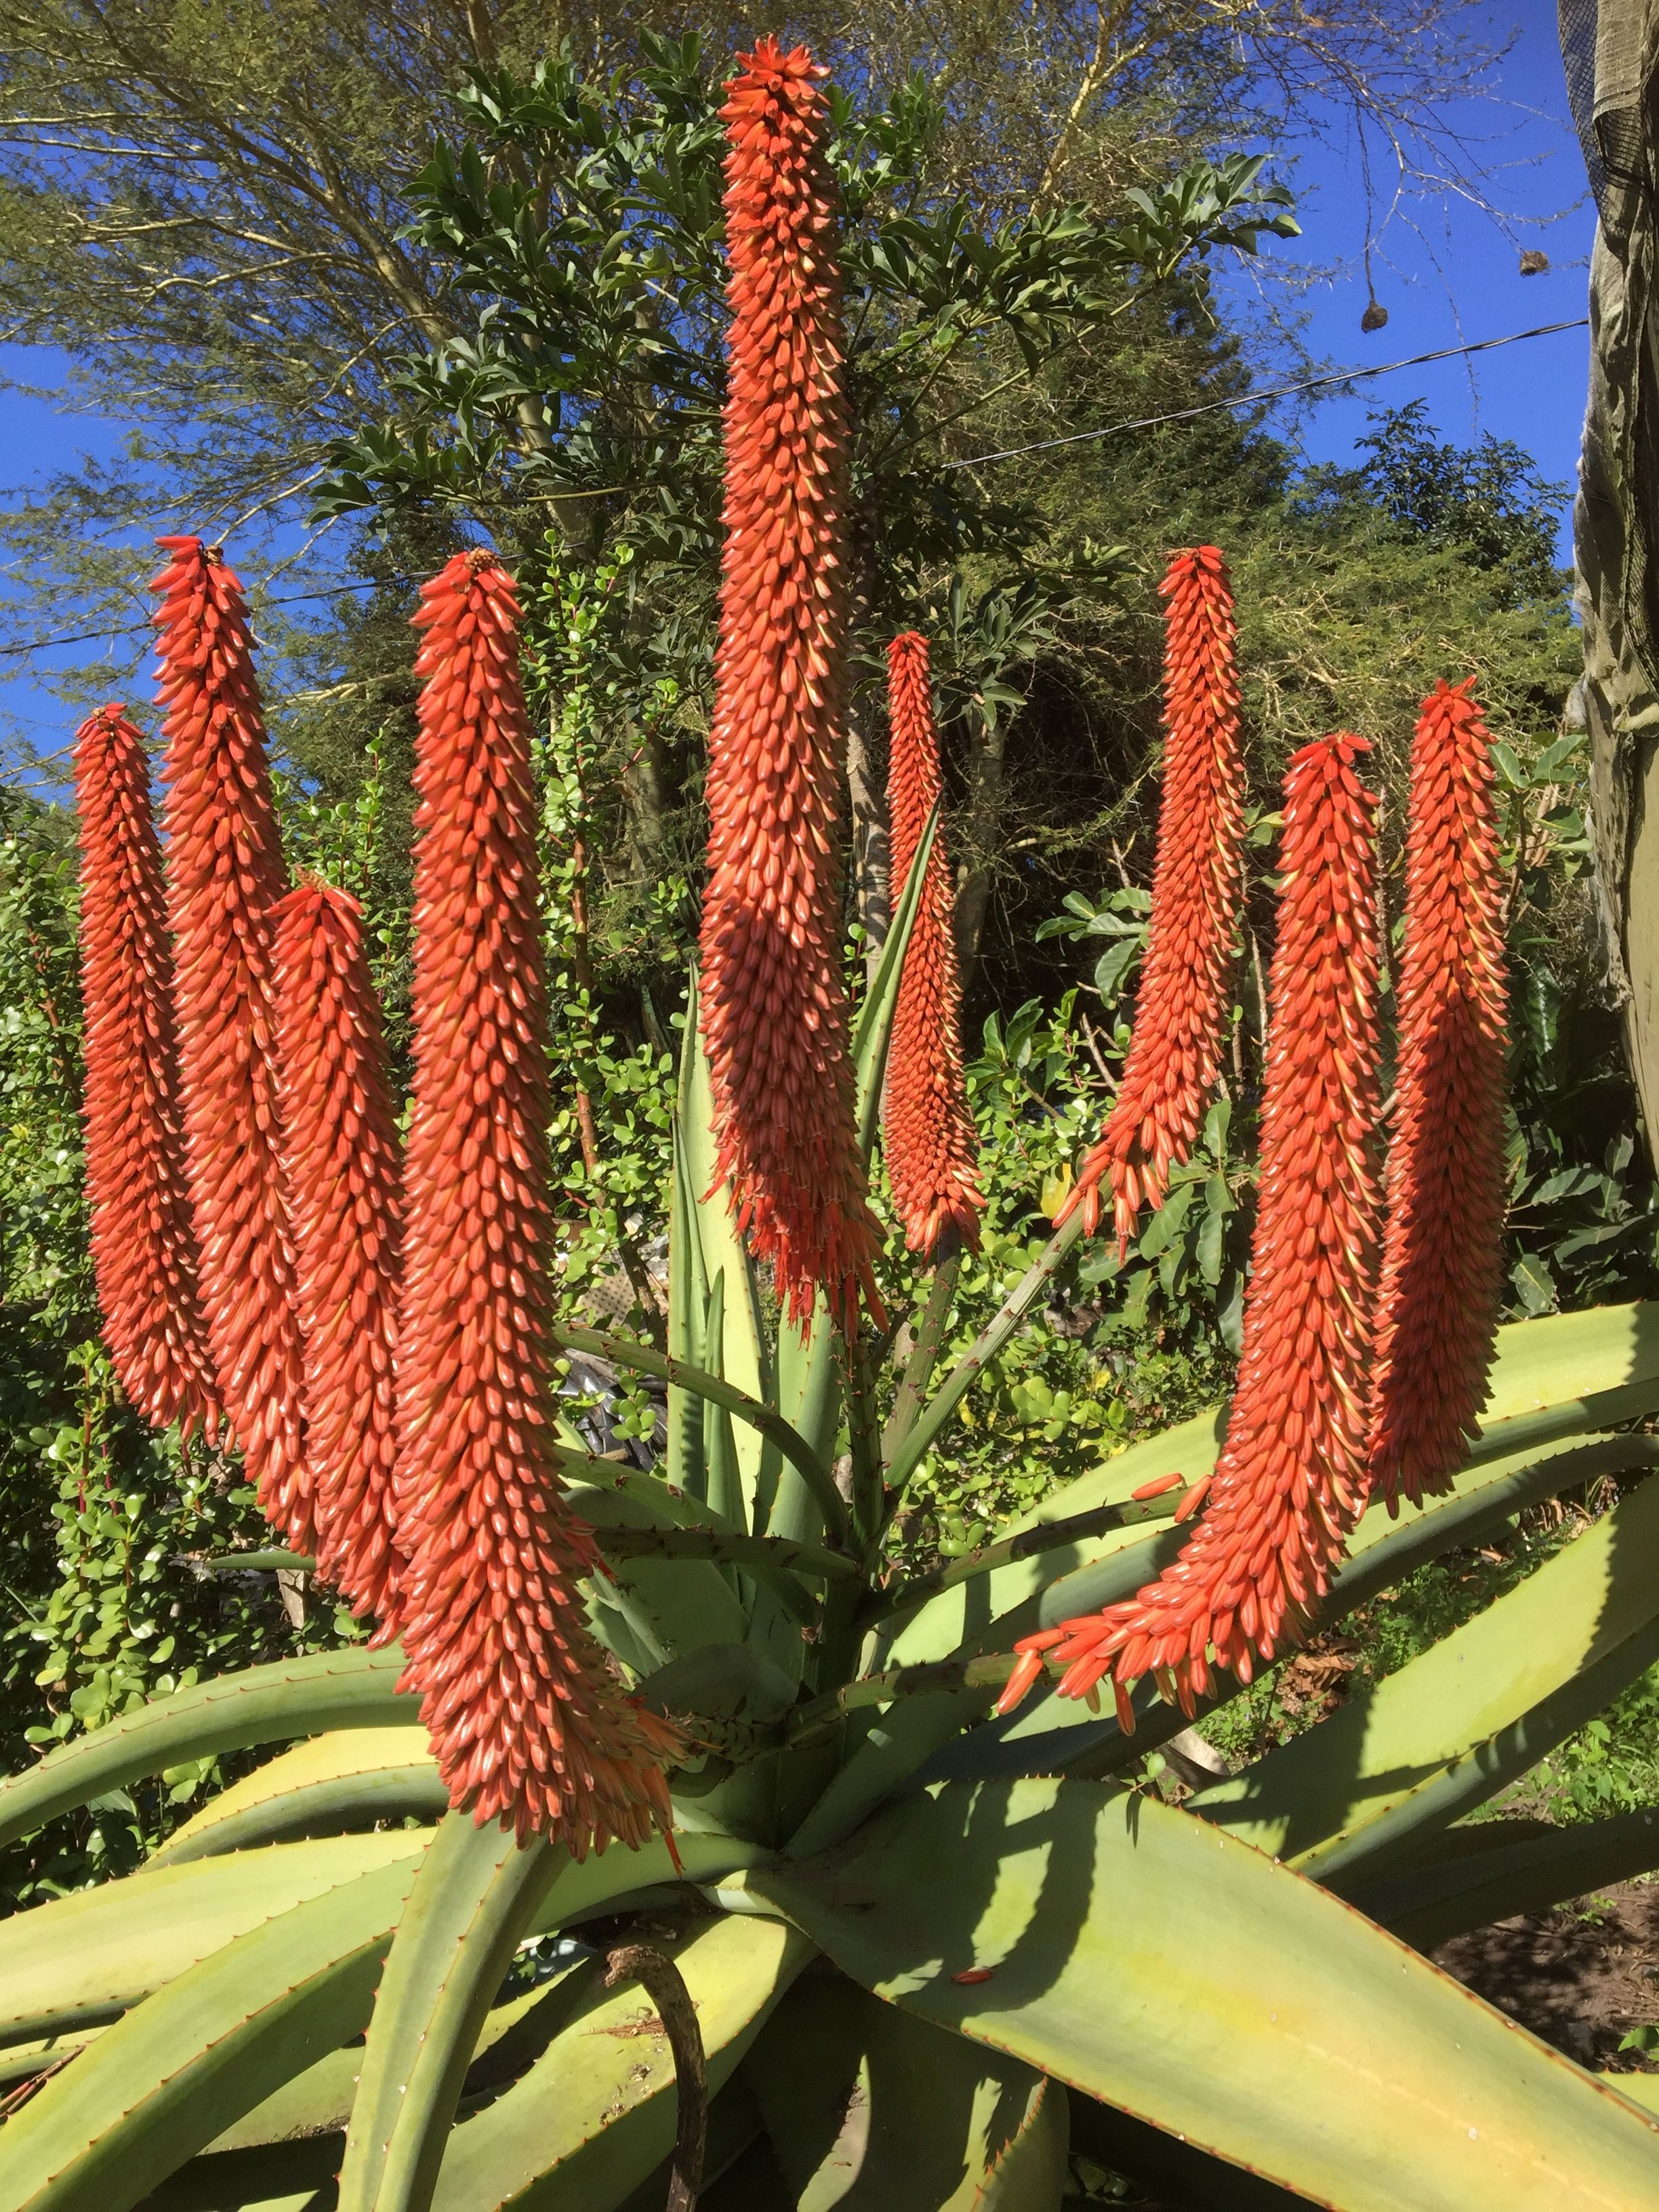 Stunning Candelabra Like Flower Spikes Of The Wonderous Bitter Or Red Aloe Aloe Ferox Flower Spike Succulents Flowers